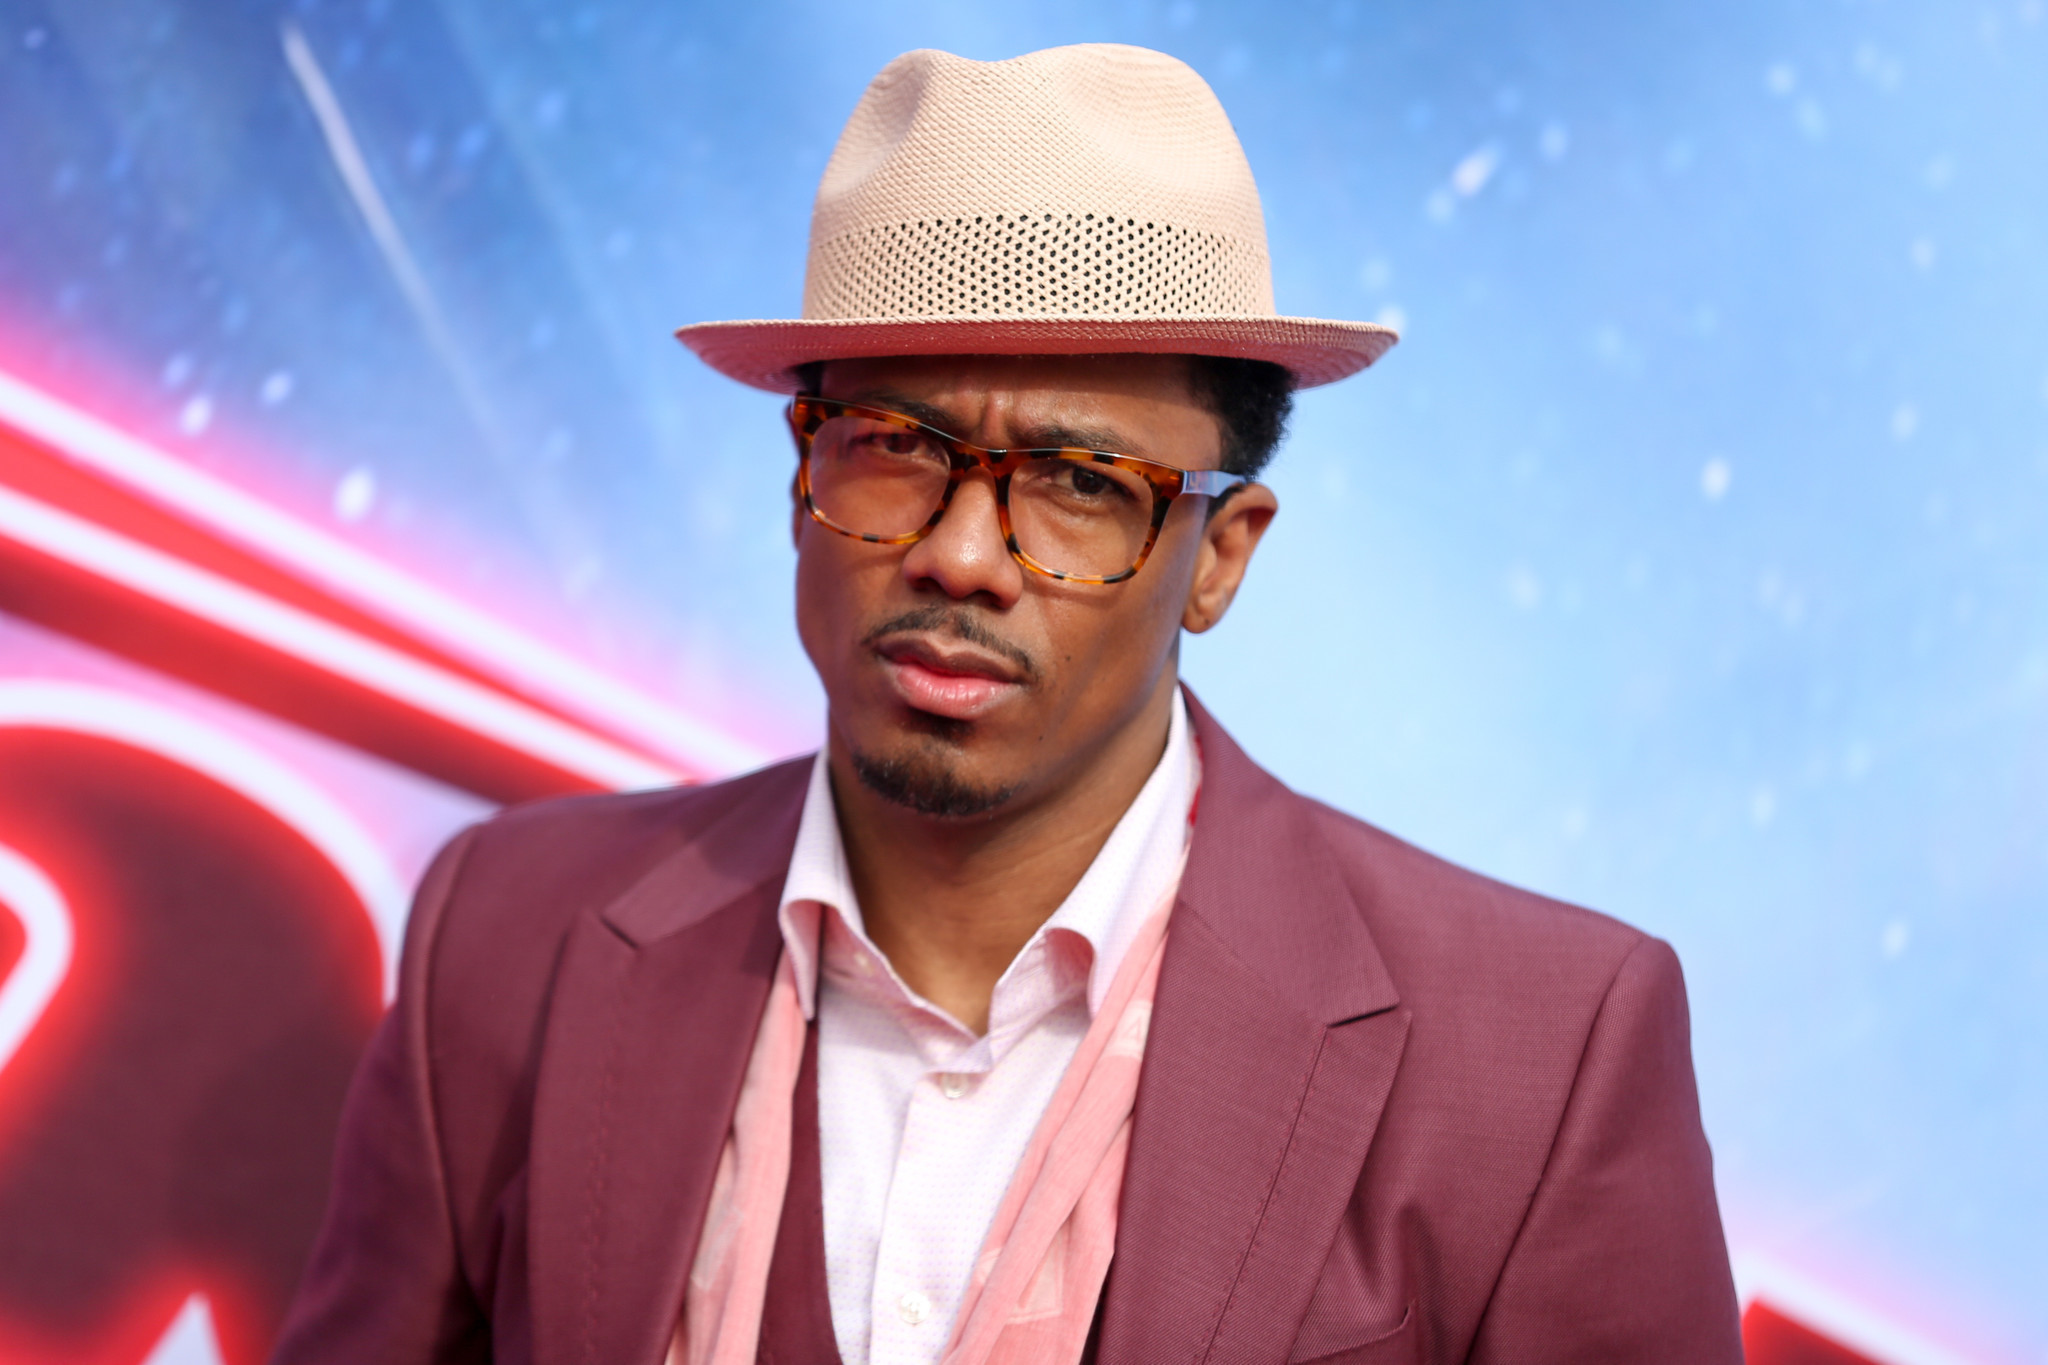 Nick Cannon blasts NBC, says he wants to quit 'America's Got Talent' - The San Diego Union-Tribune